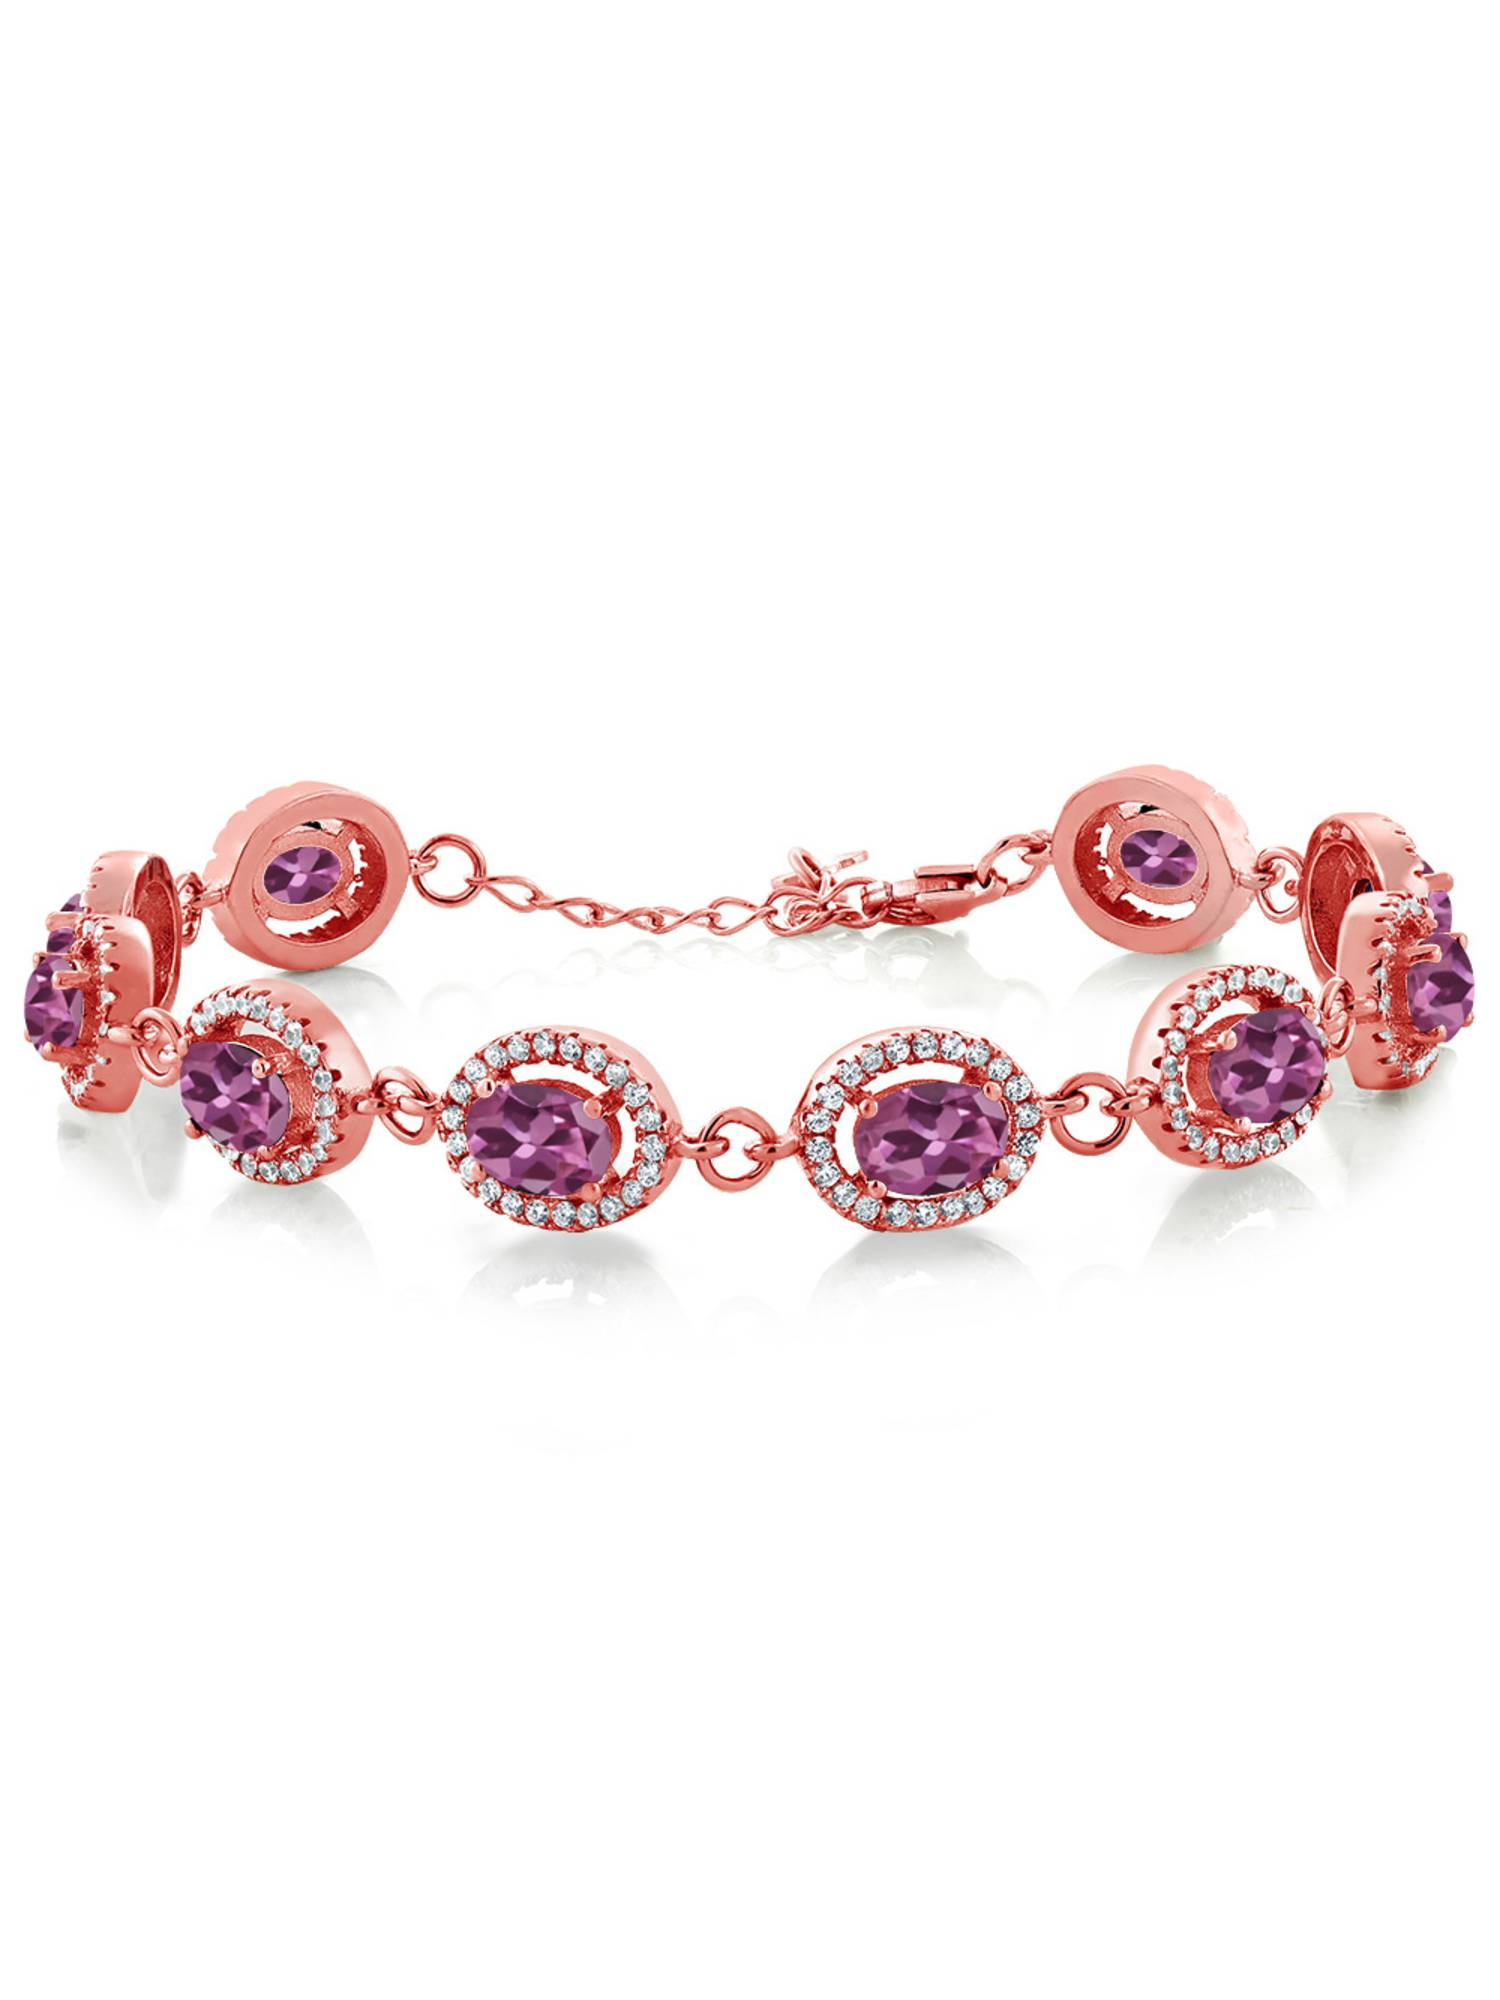 9.88 Ct Oval Pink Tourmaline AA 18K Rose Gold Plated Silver Bracelet by